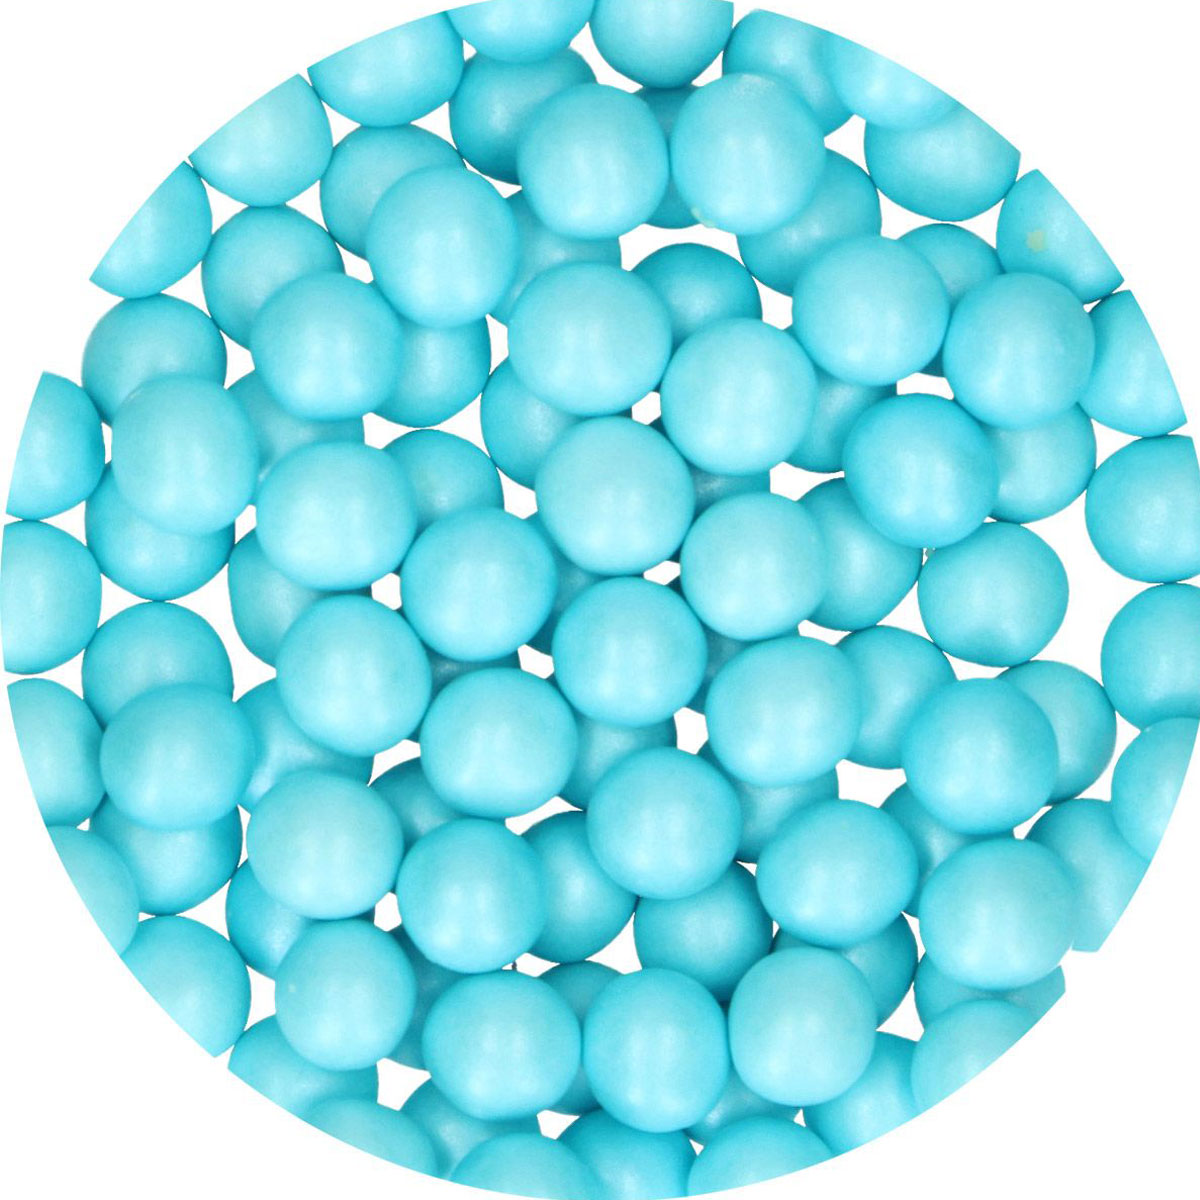 FunCakes Candy Choco Pearls Large Blue 70g